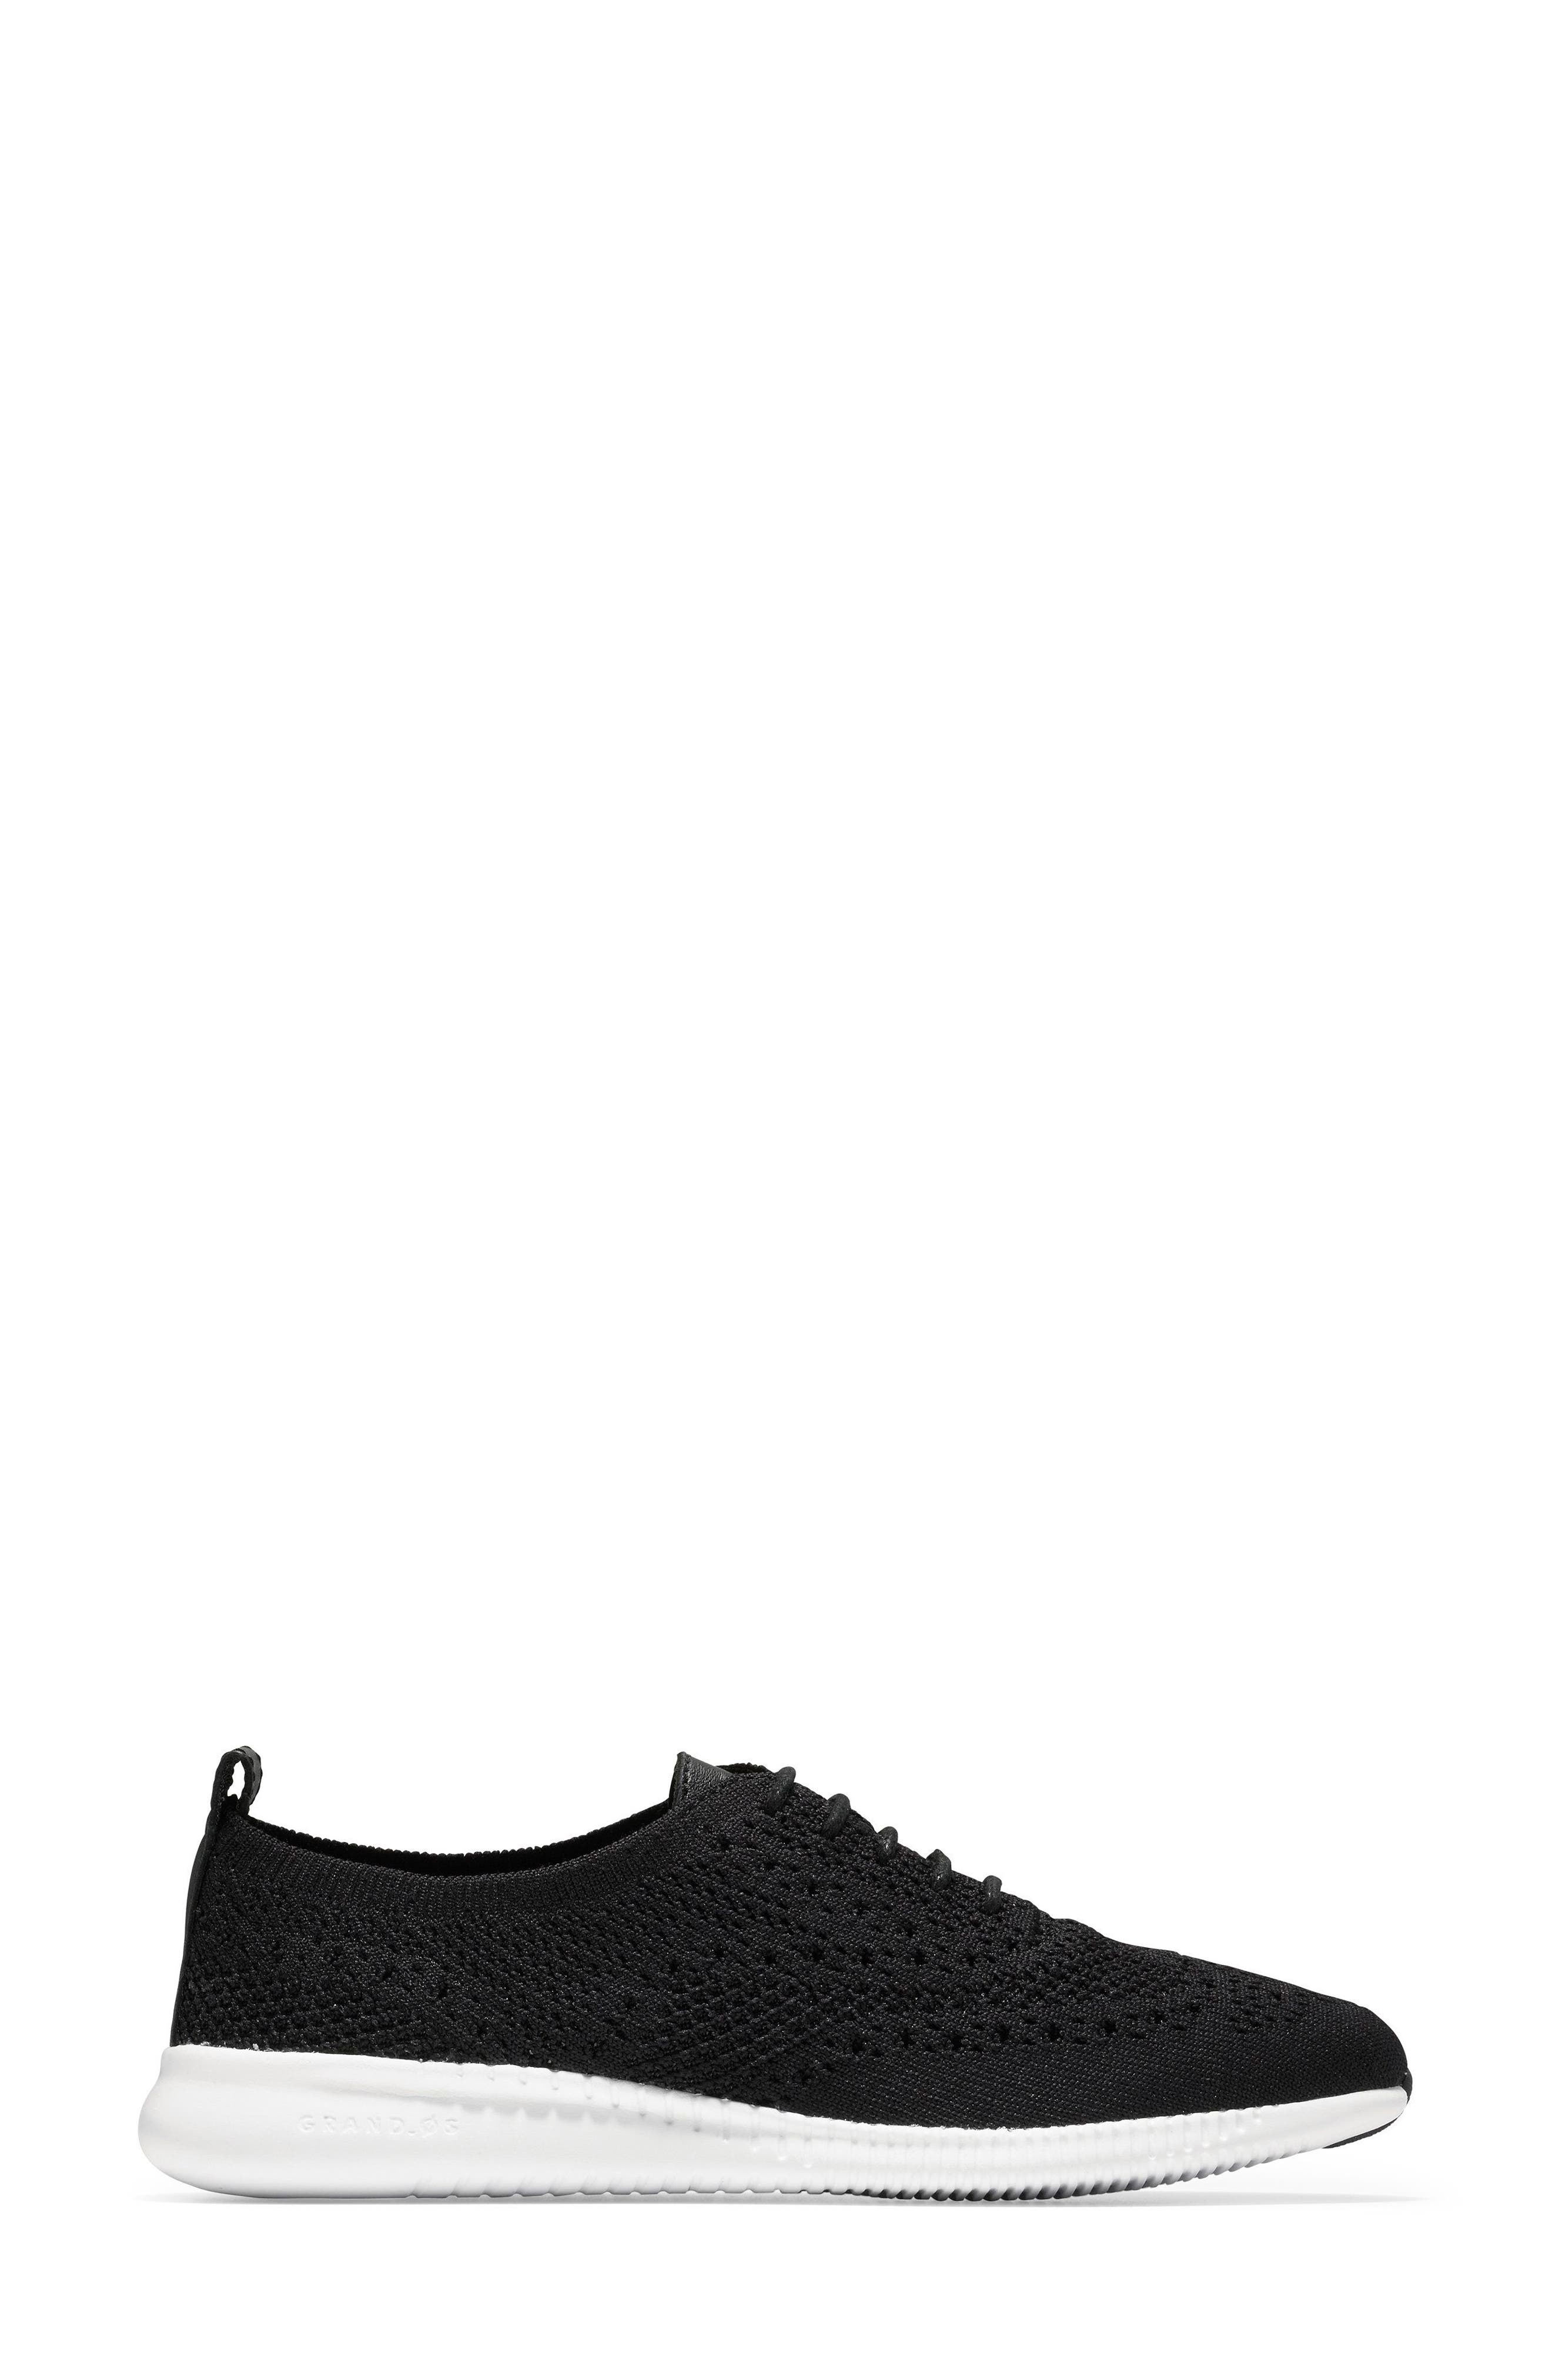 COLE HAAN, 2.ZERØGRAND Stitchlite Wingtip Sneaker, Alternate thumbnail 3, color, BLACK FABRIC